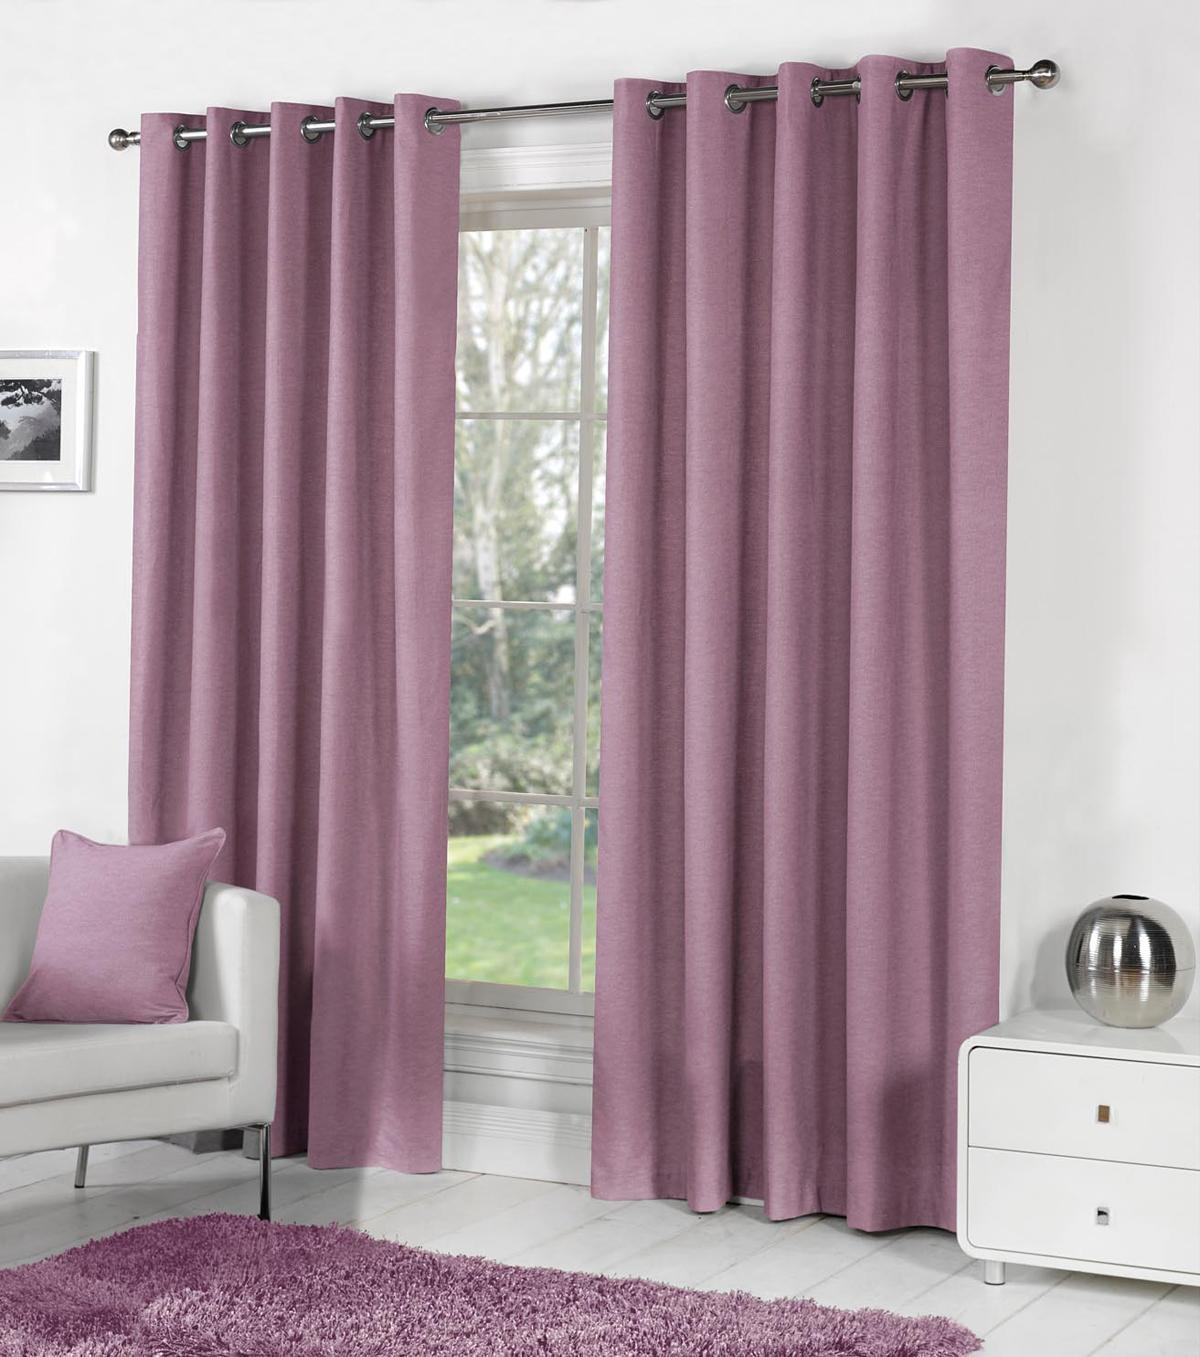 46 90 Curtains Cheap Window Curtains Available Terrys Fabrics With Ready Made Curtains For Large Bay Windows (Image 1 of 15)